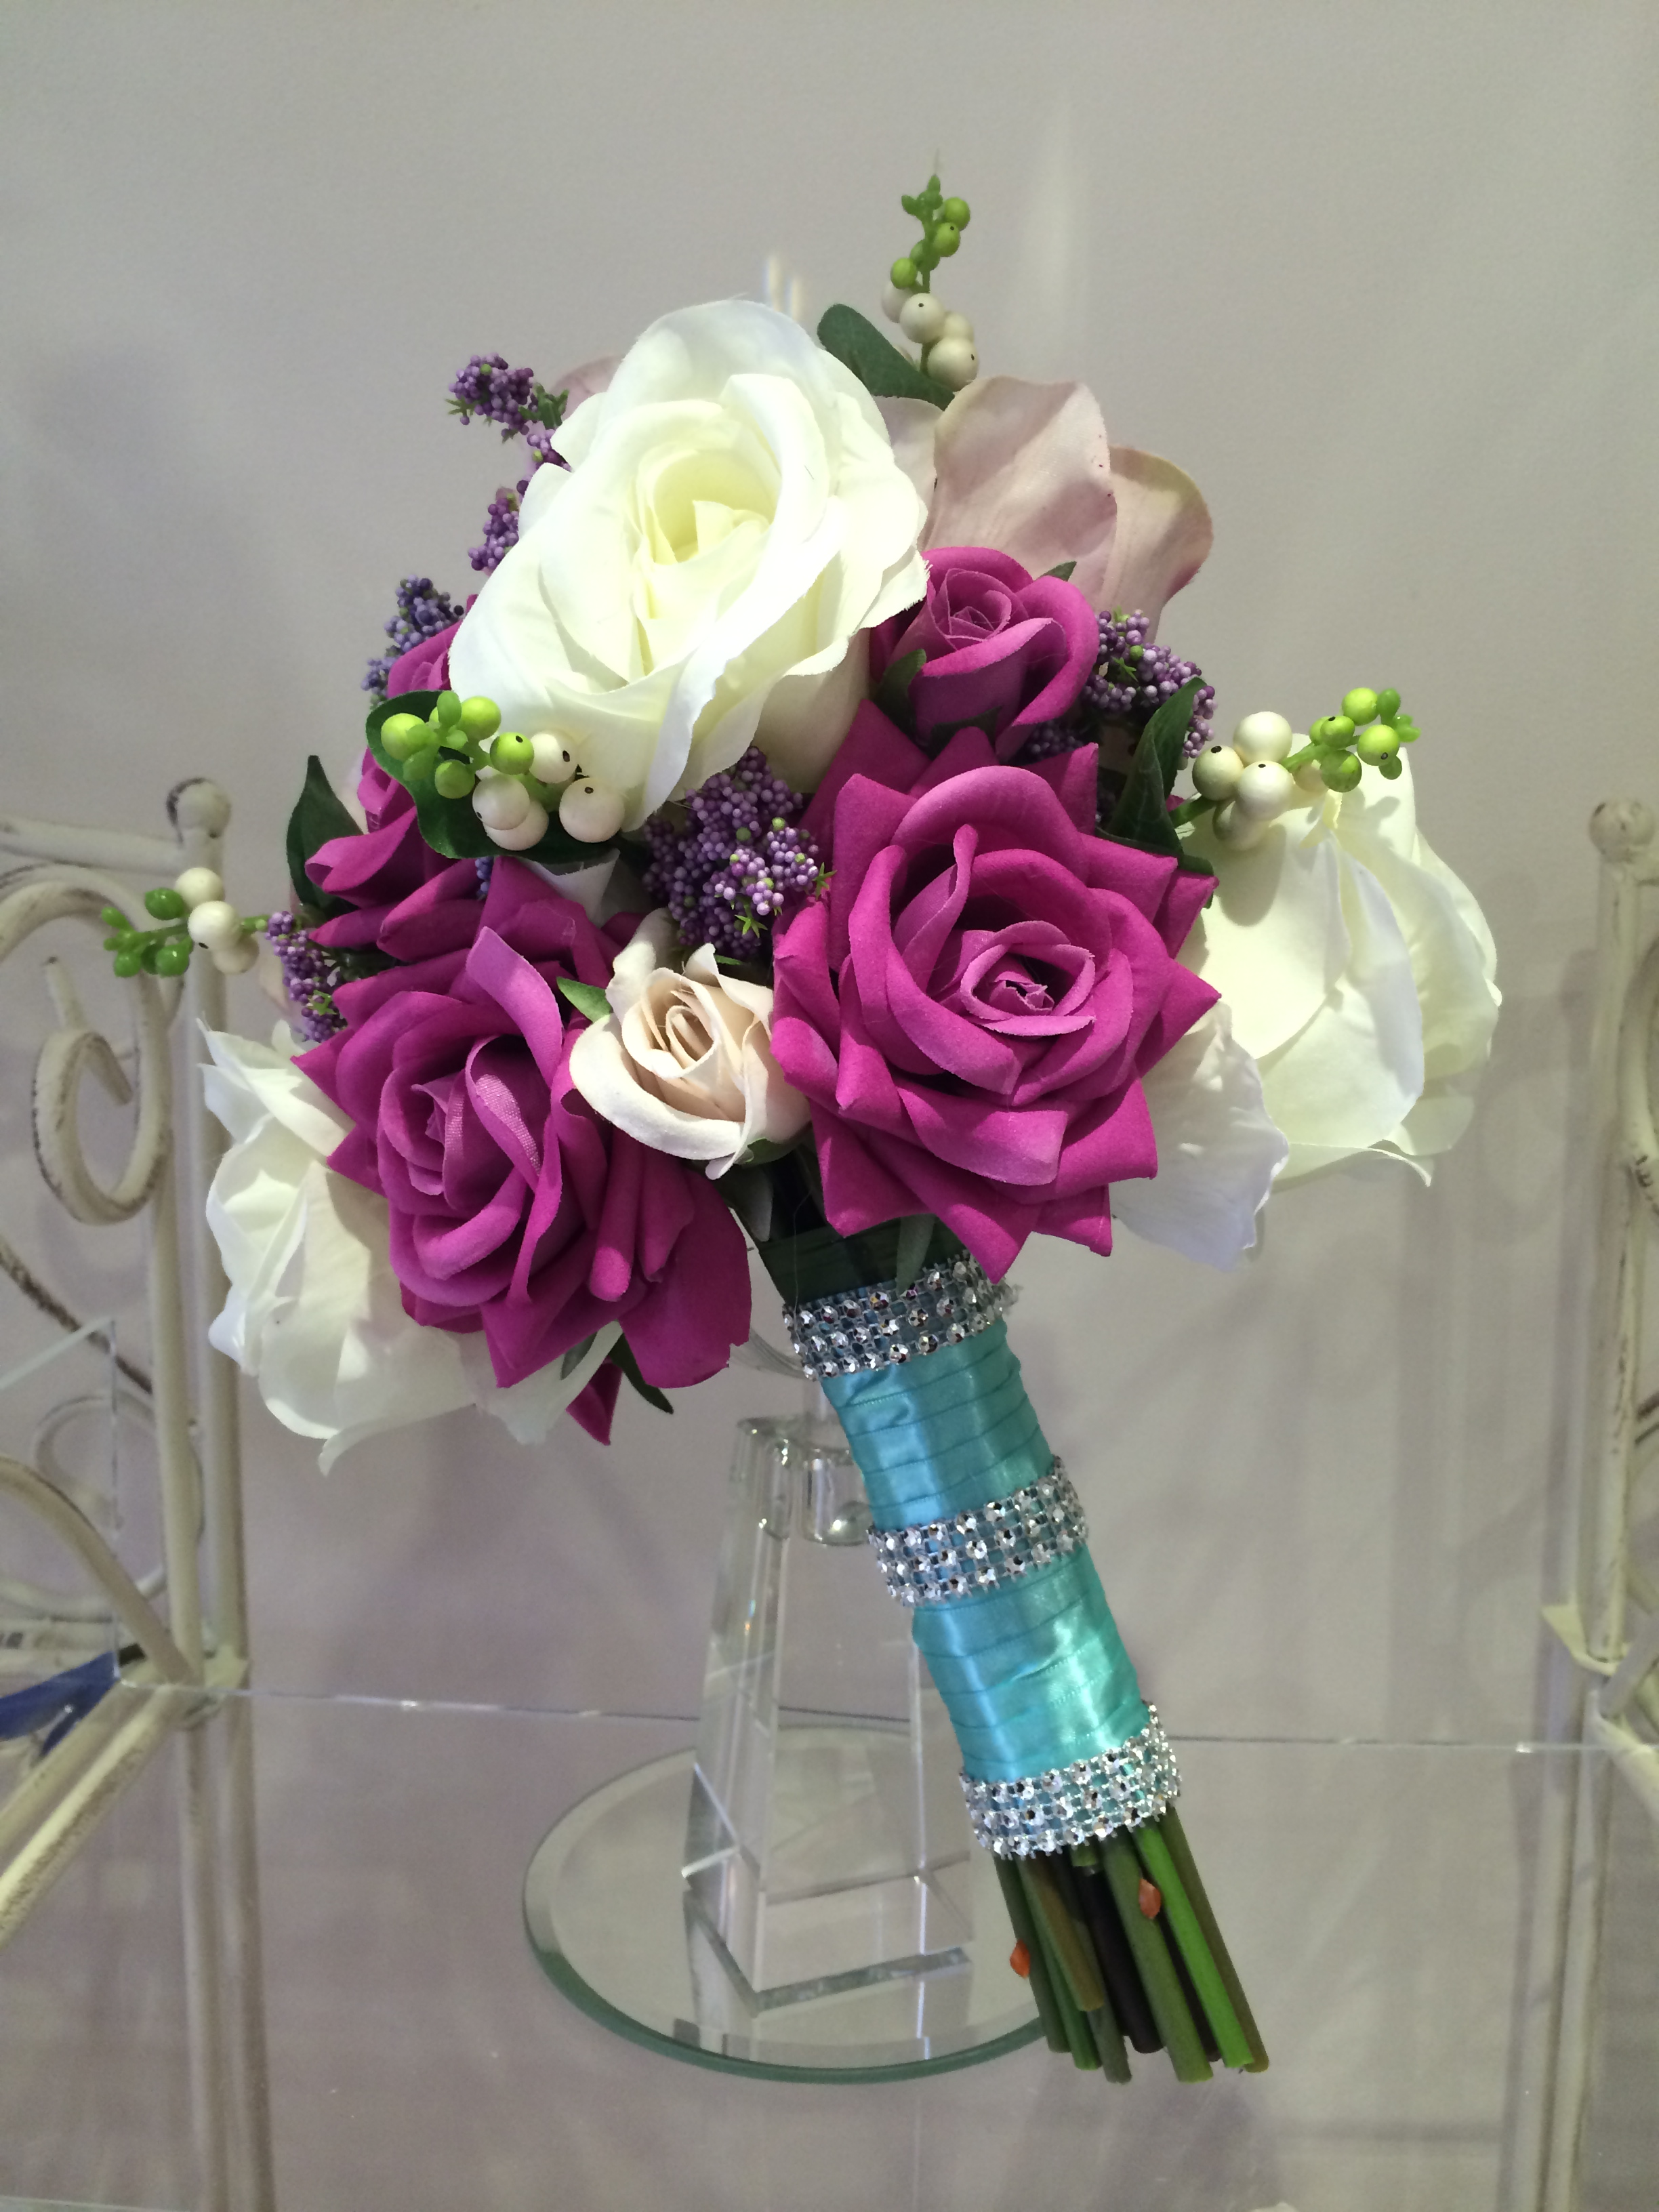 Brides Handtied Bouquet With Hot Pink & Cream Roses, Hedgerow & Snowberries With Aqua Ribbon